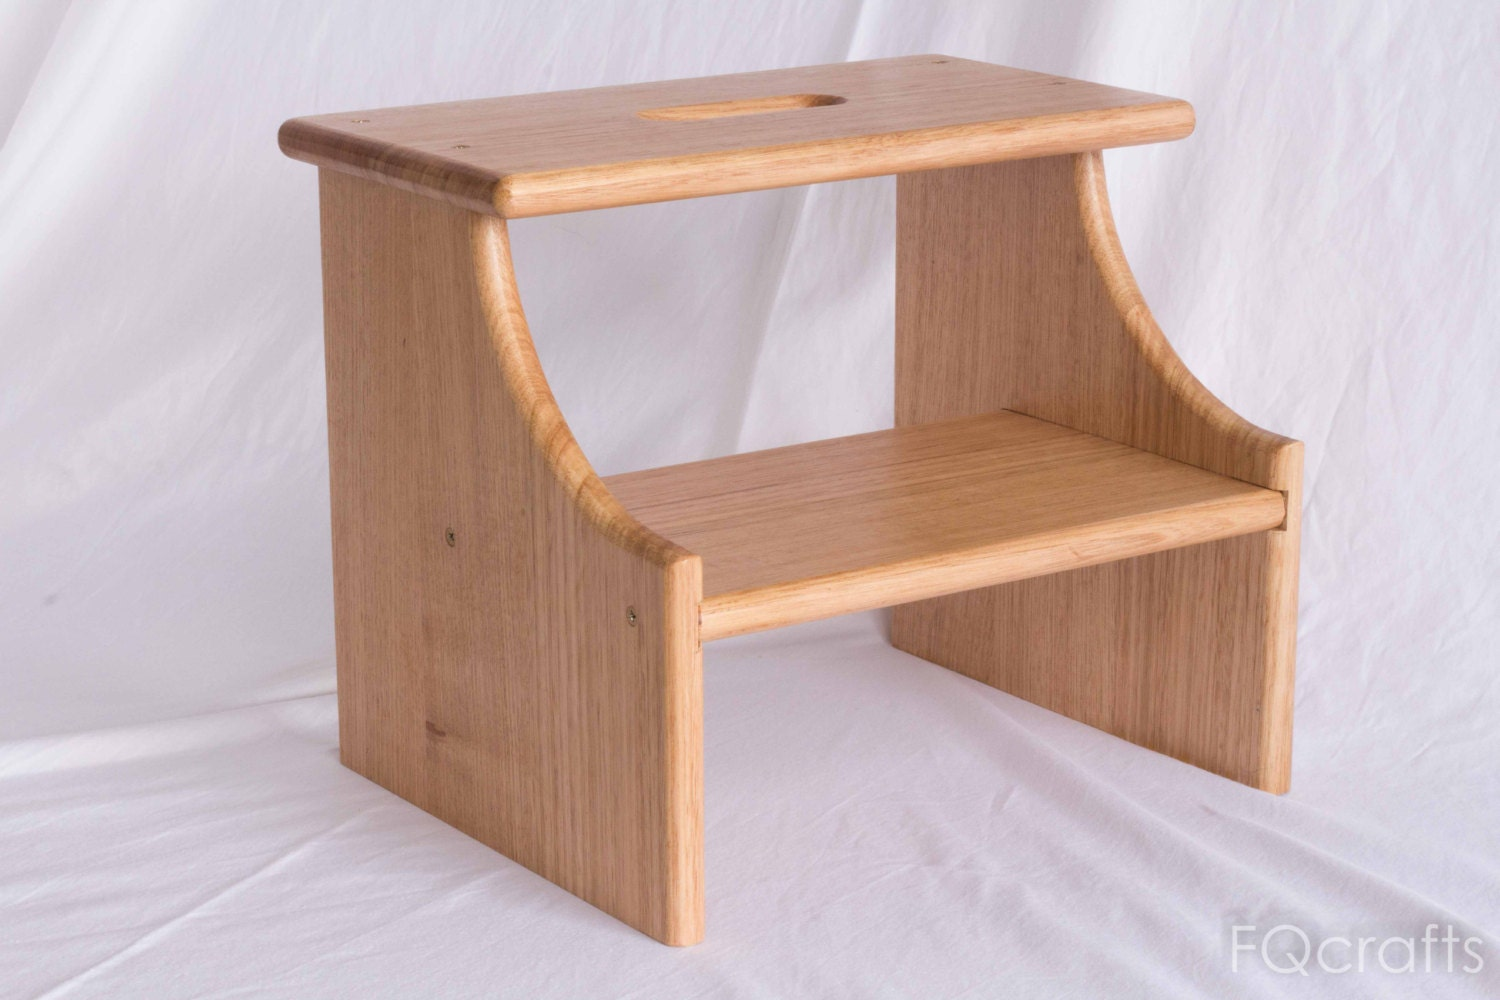 Wooden Step Stool Two Step Hardwood By Fqcrafts On Etsy